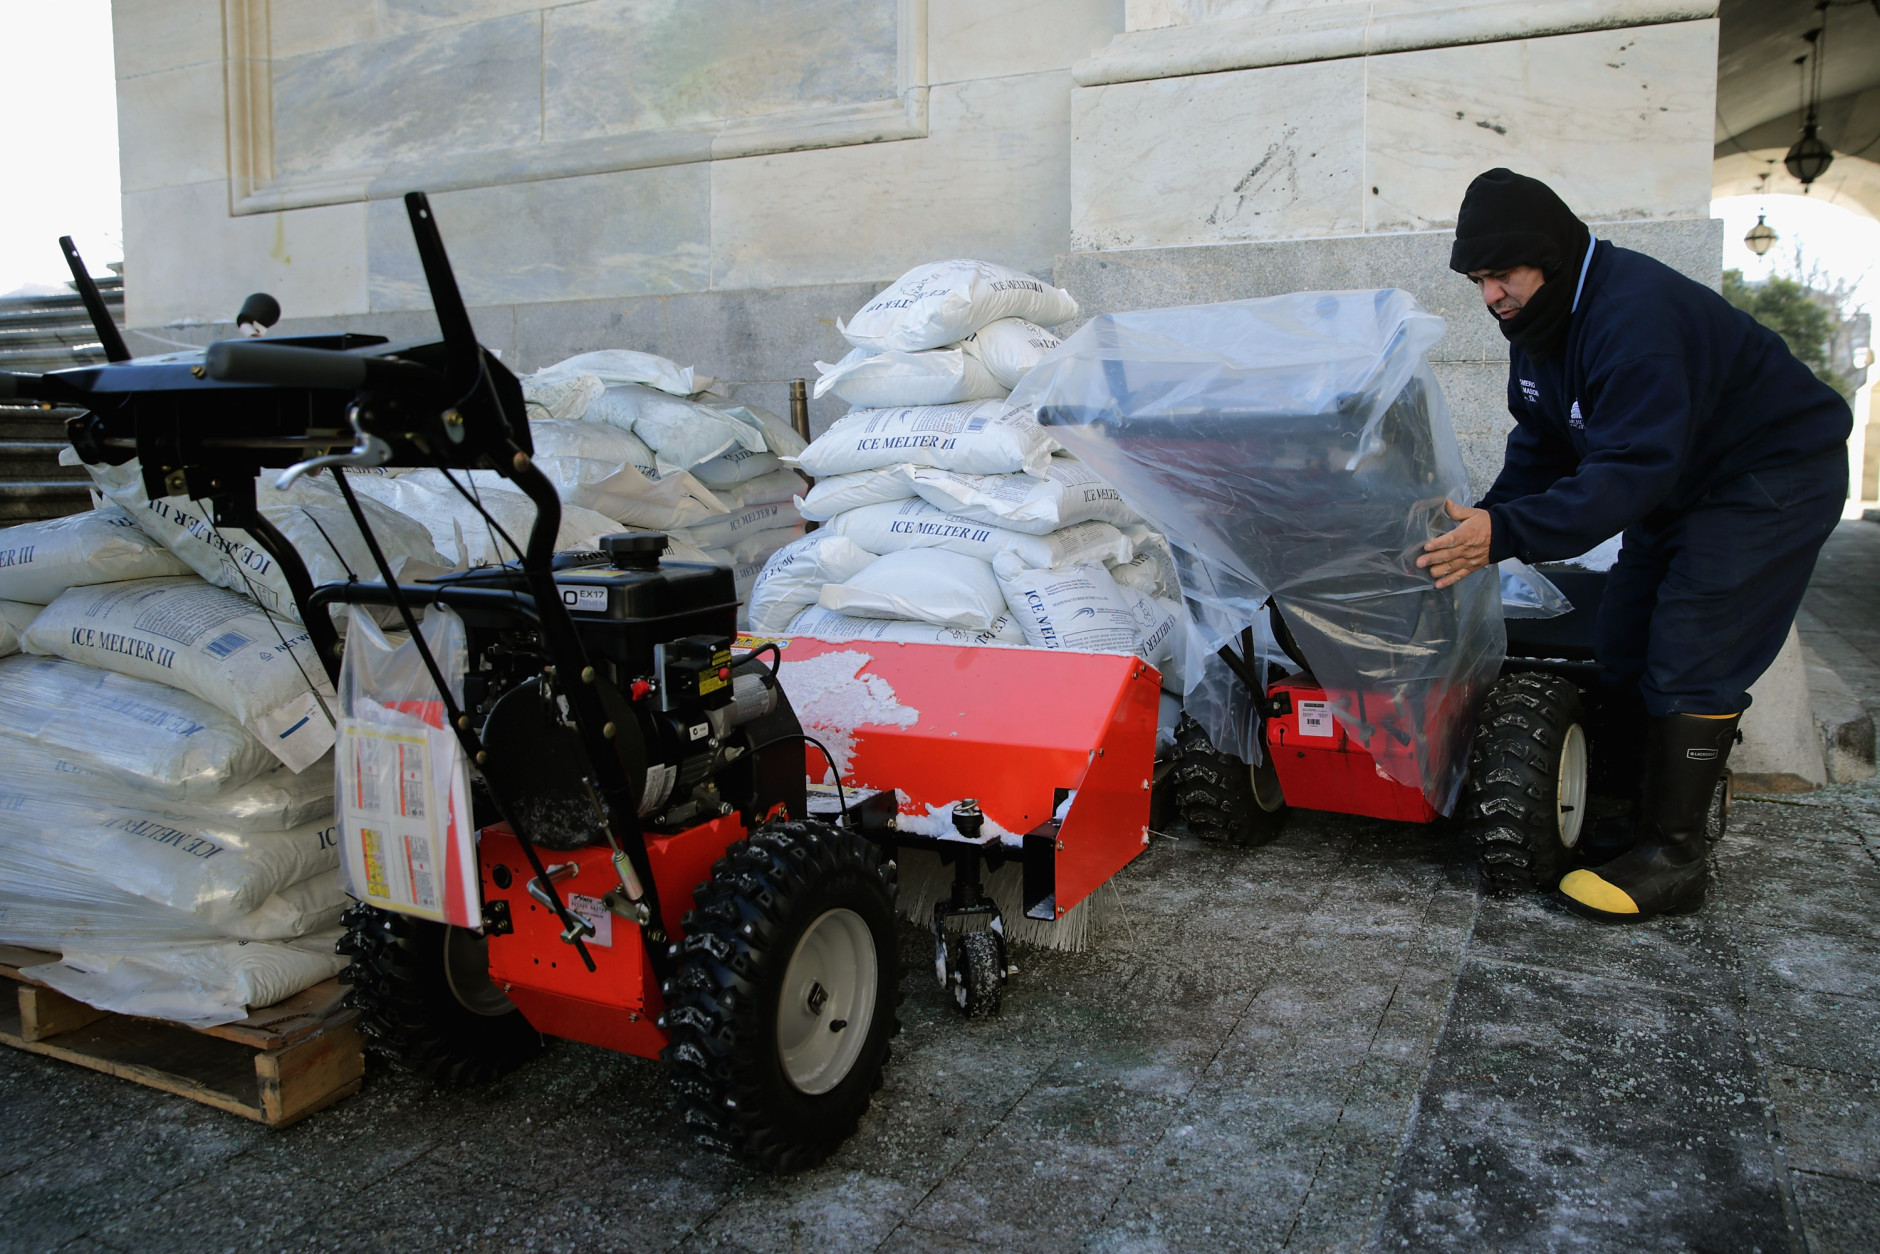 Stone Mason Medaro Romero covers gas powered snow sweepers in plastic bags in preparation for a coming winter storm outside the U.S. Capitol January 21, 2016 in Washington, DC. One inch of snowfall delayed school openings in the greater Washington, DC, area on Thursday as people along the Easter Seaboard prepare for a blizzard to arrive within the next 24 hours.  (Photo by Chip Somodevilla/Getty Images)